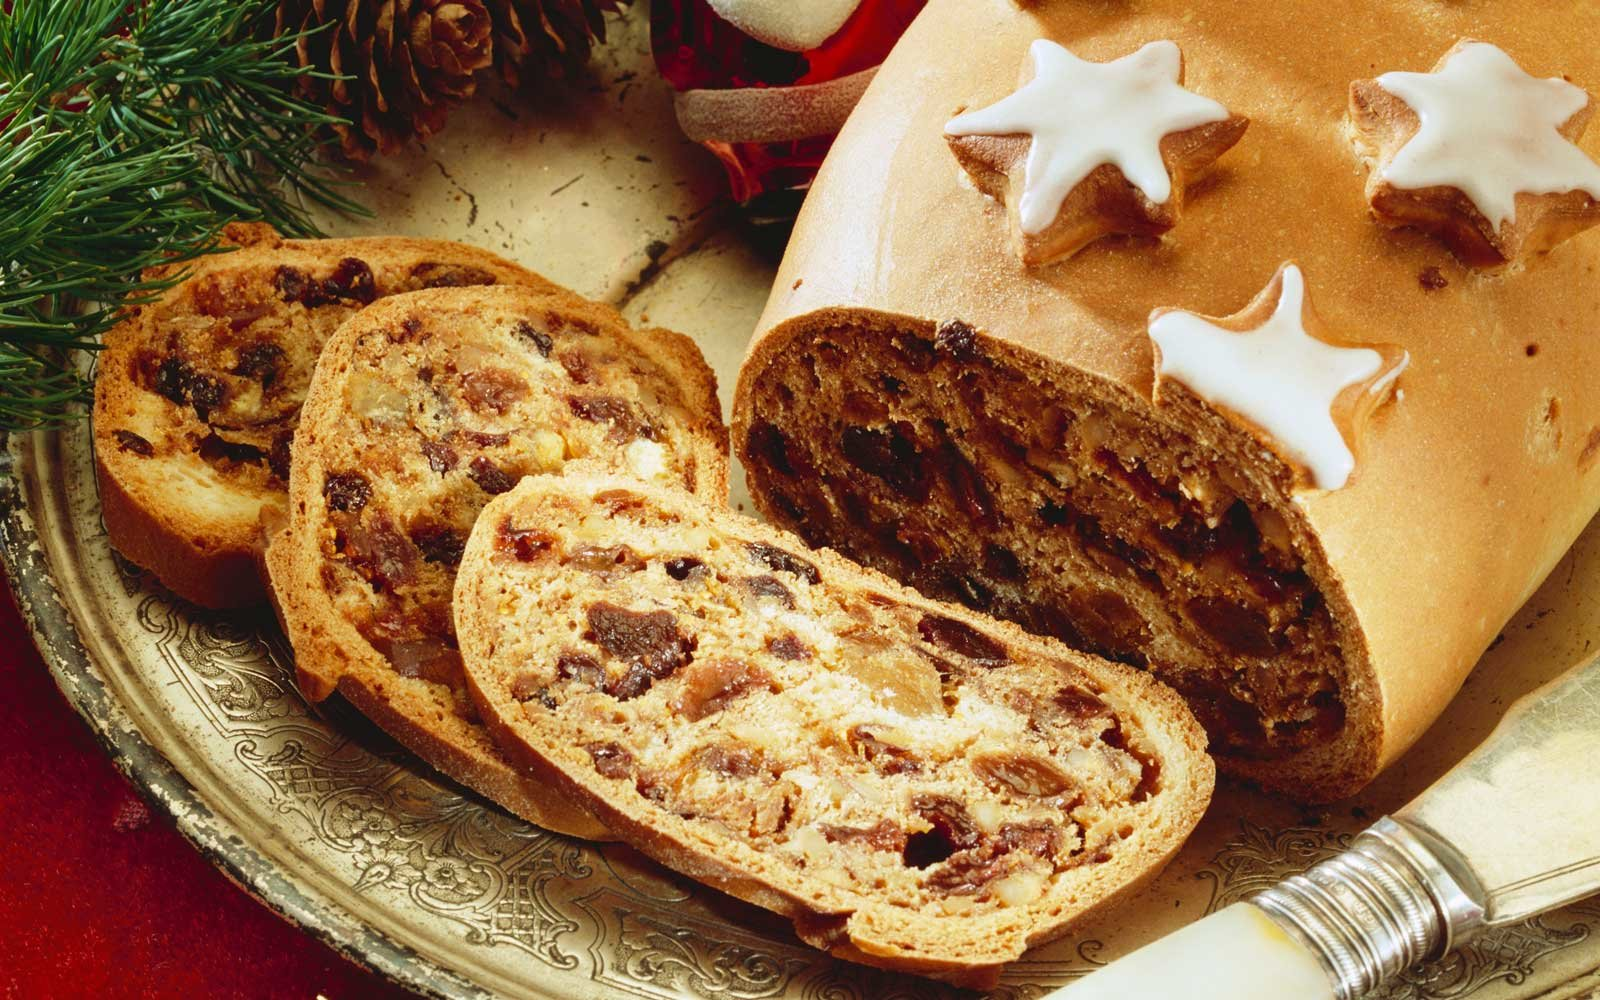 Kletzenbrot is a spicy and sweet bread made with a variety of spices and dried fruits like plums.